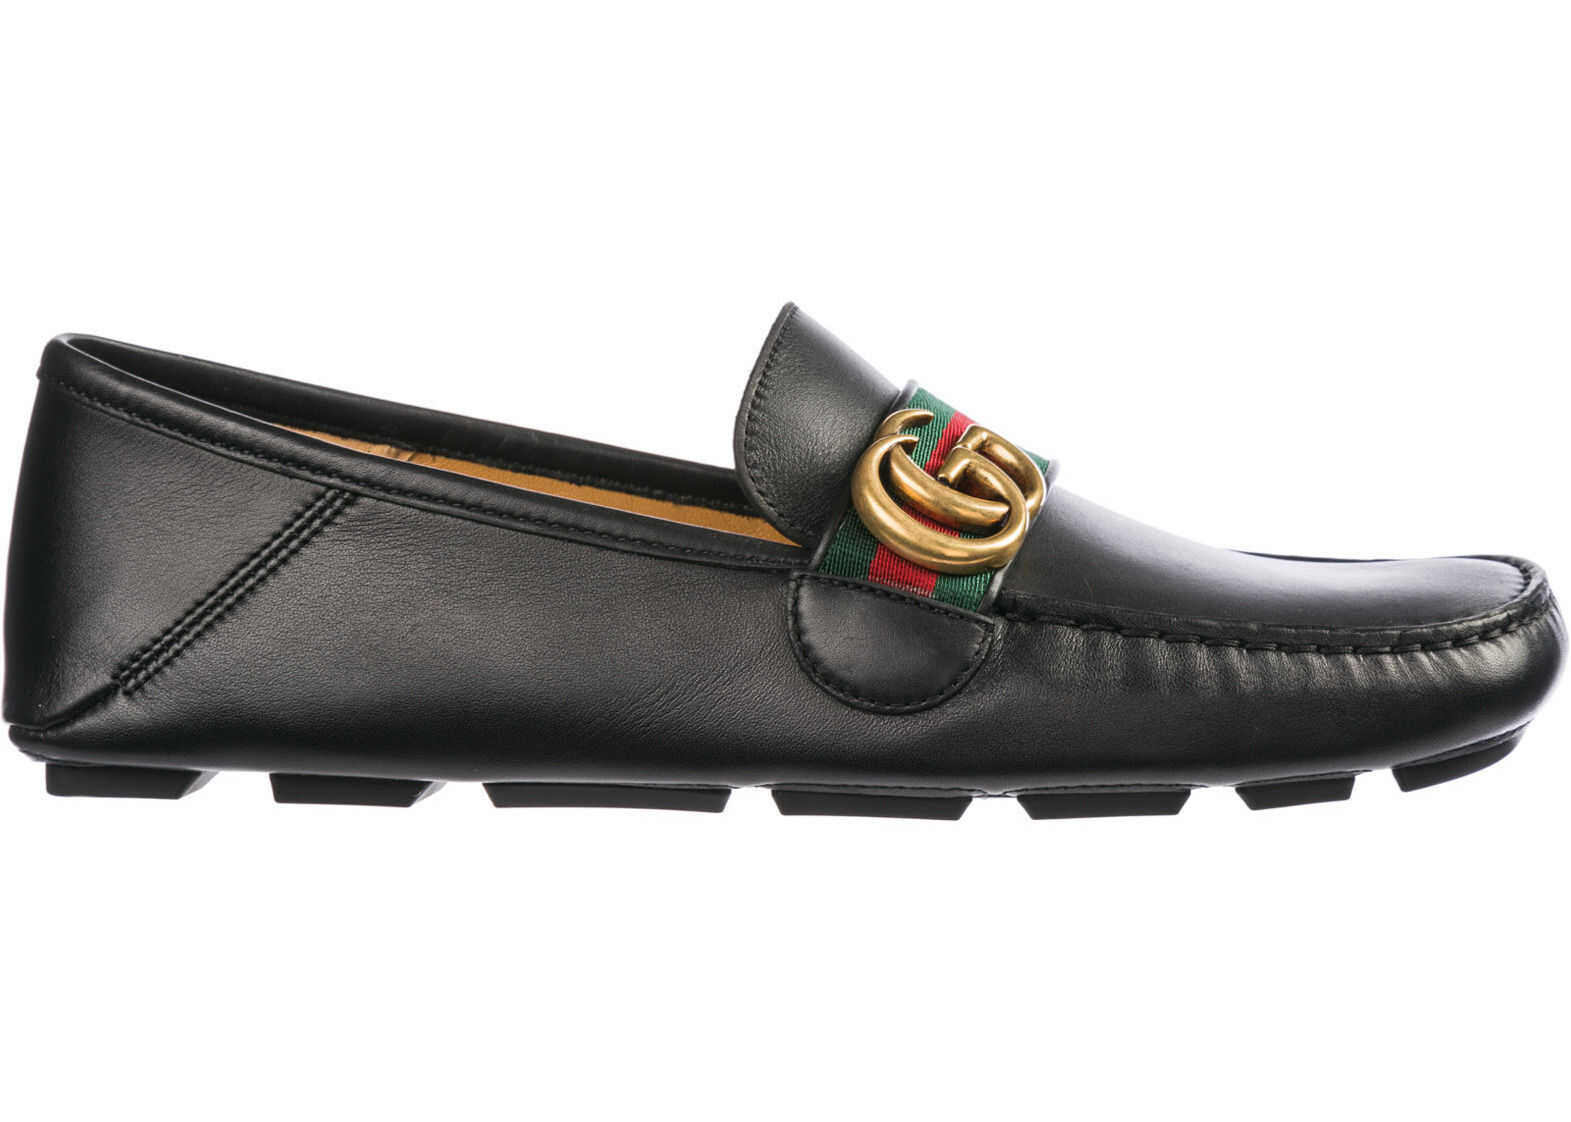 Gucci Loafers Moccasins Black